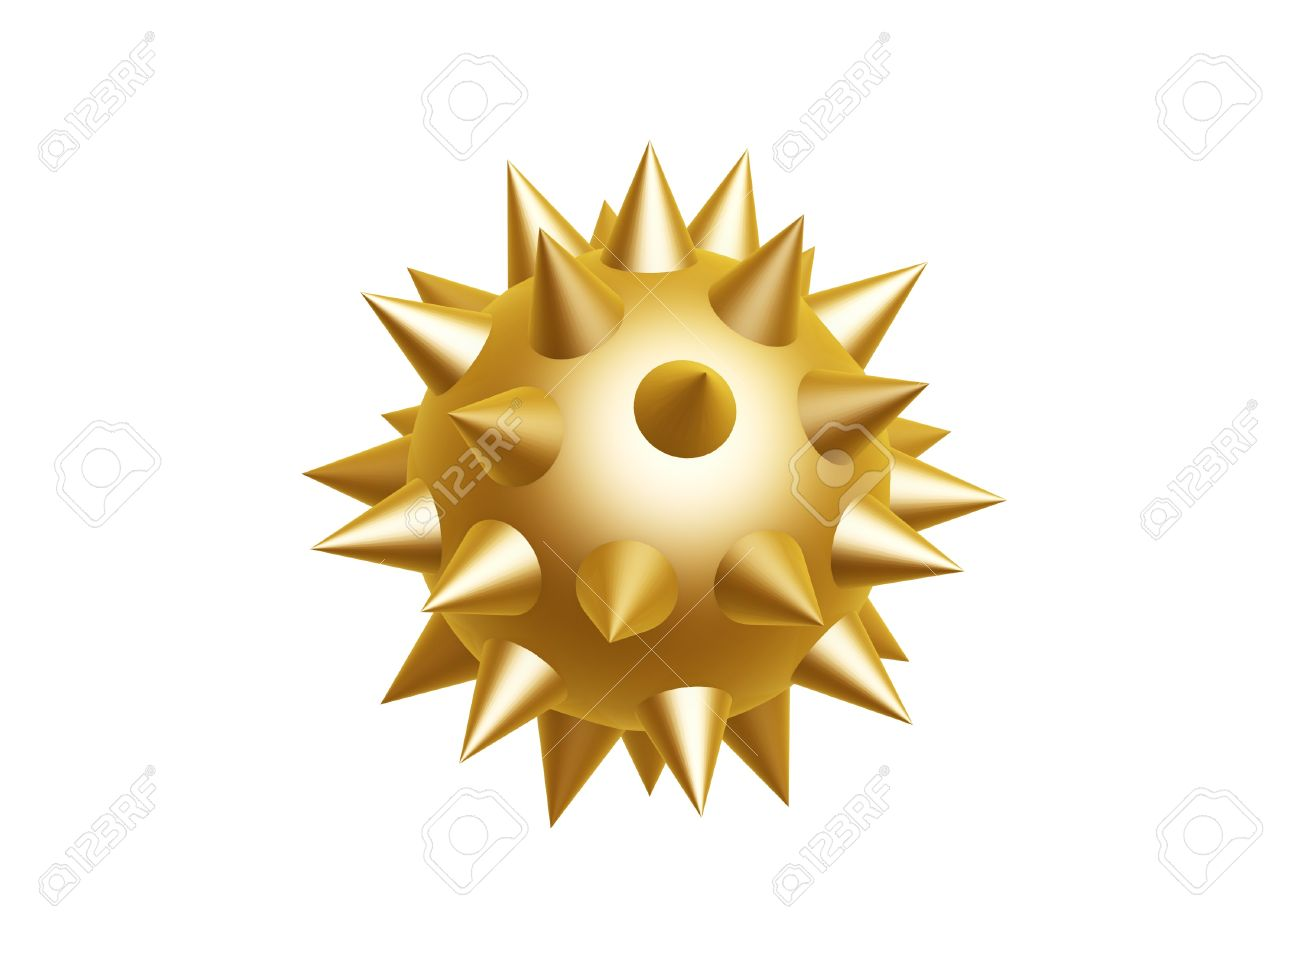 Golden Morning Star Isolated On White Background Stock Photo.